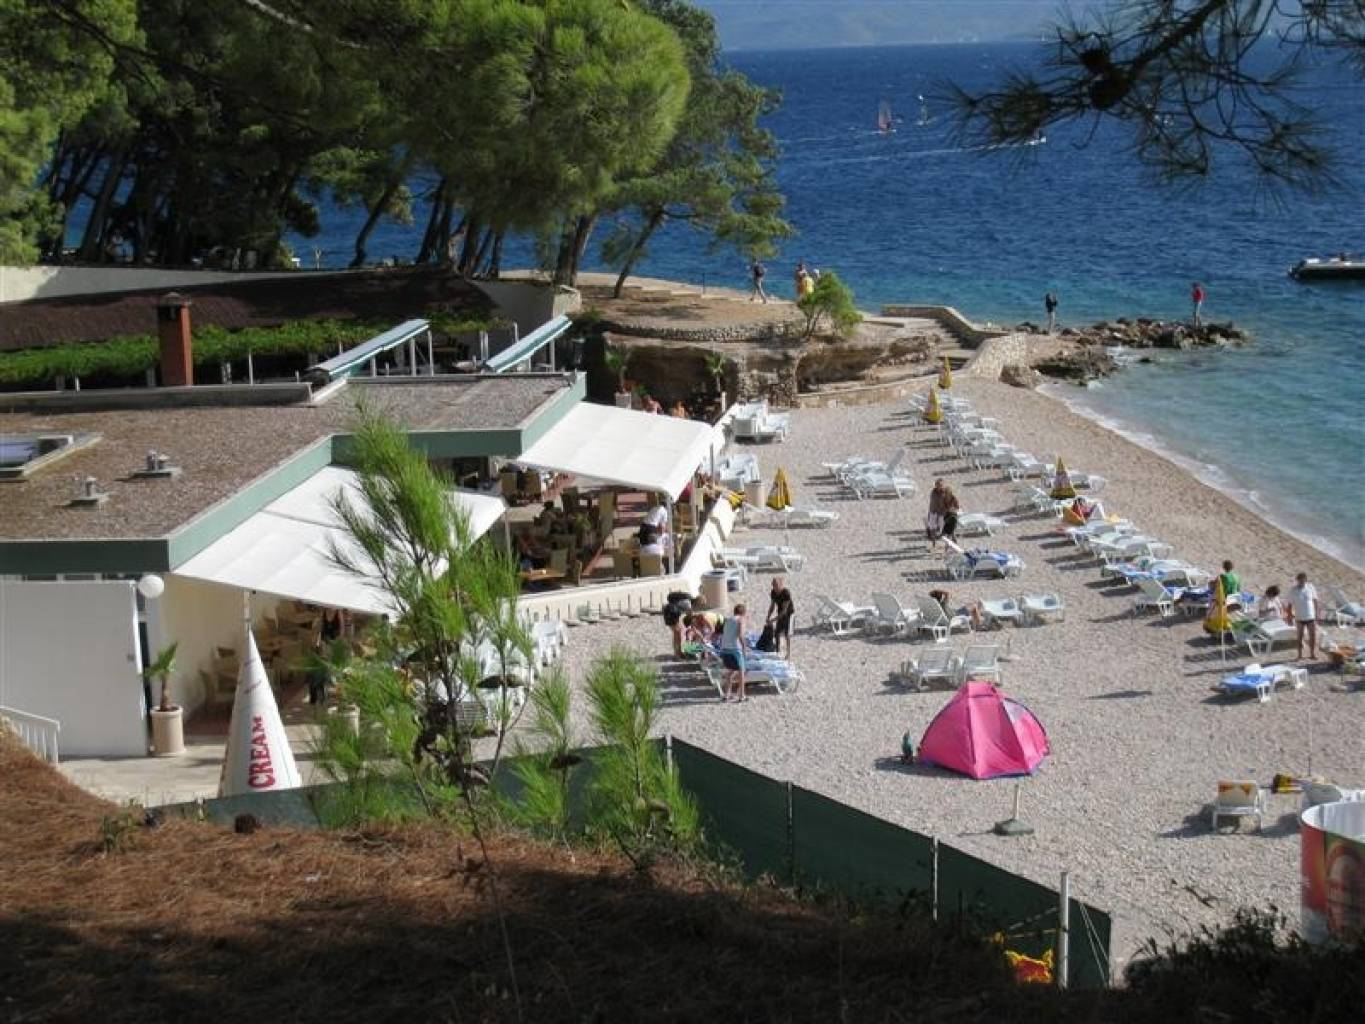 One of the beach cafe/bars on a smaller beach en route to Zlatni Rat